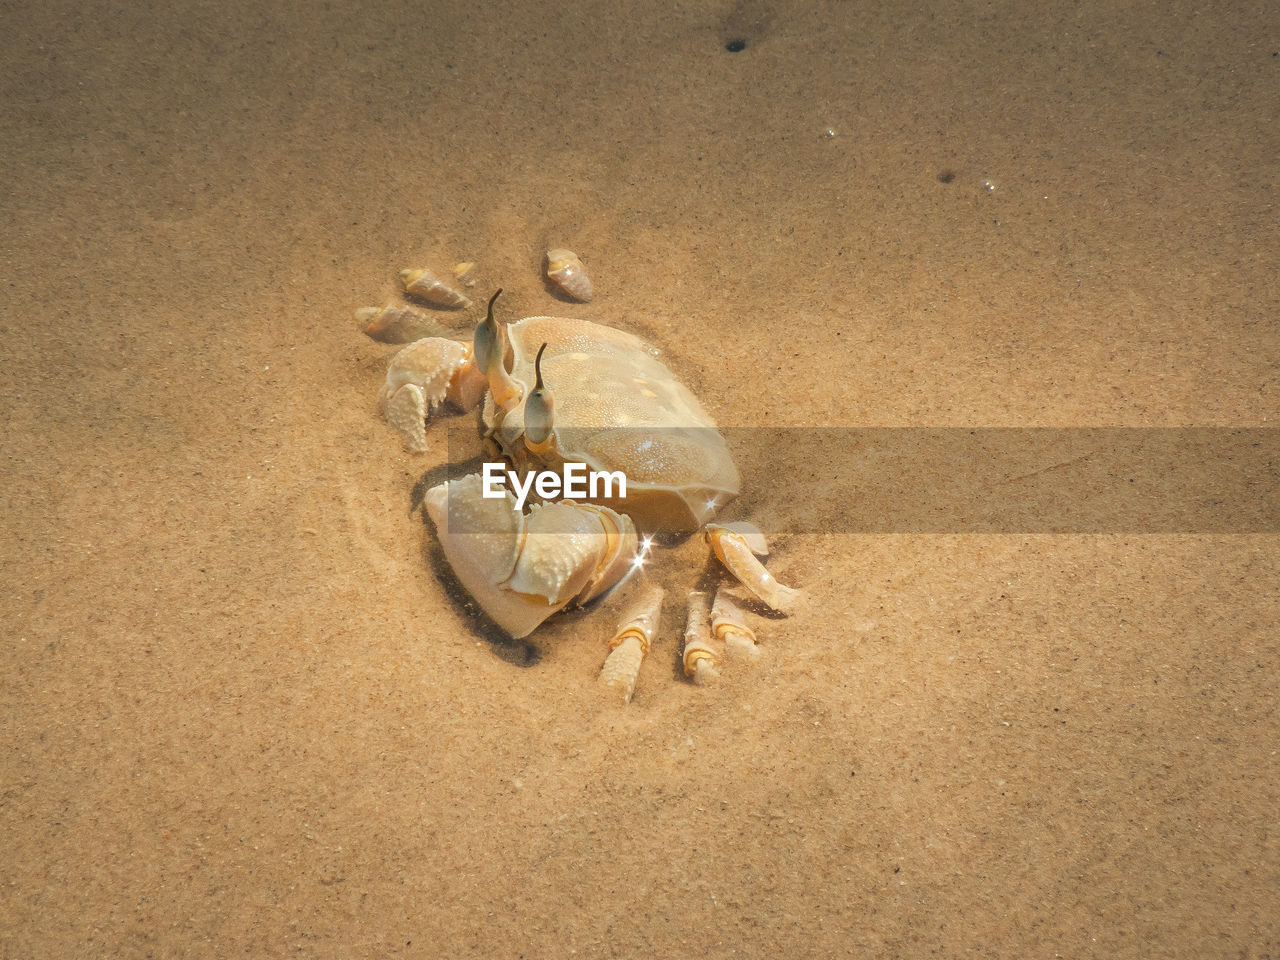 sand, animal themes, one animal, beach, nature, animals in the wild, no people, animal wildlife, sea life, day, outdoors, close-up